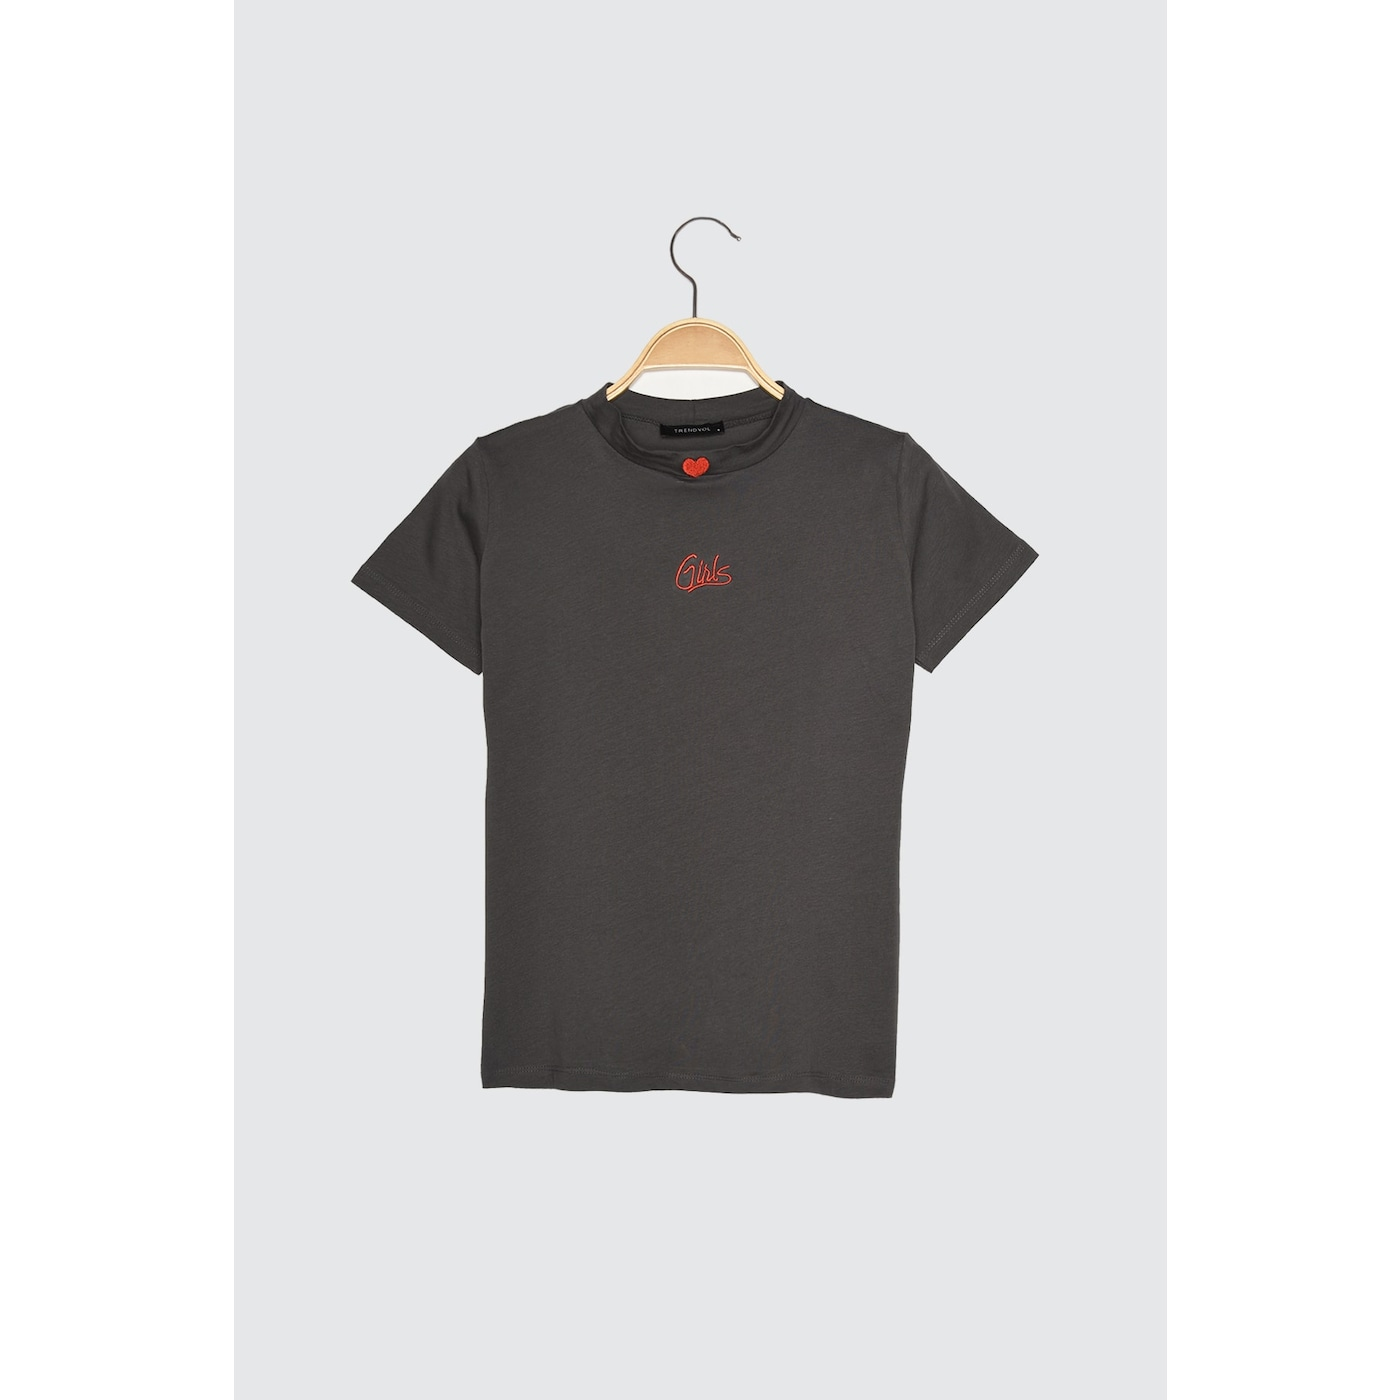 Trendyol Anthracite Embroidered Upright Collar Basic Knitted T-Shirt dámské S